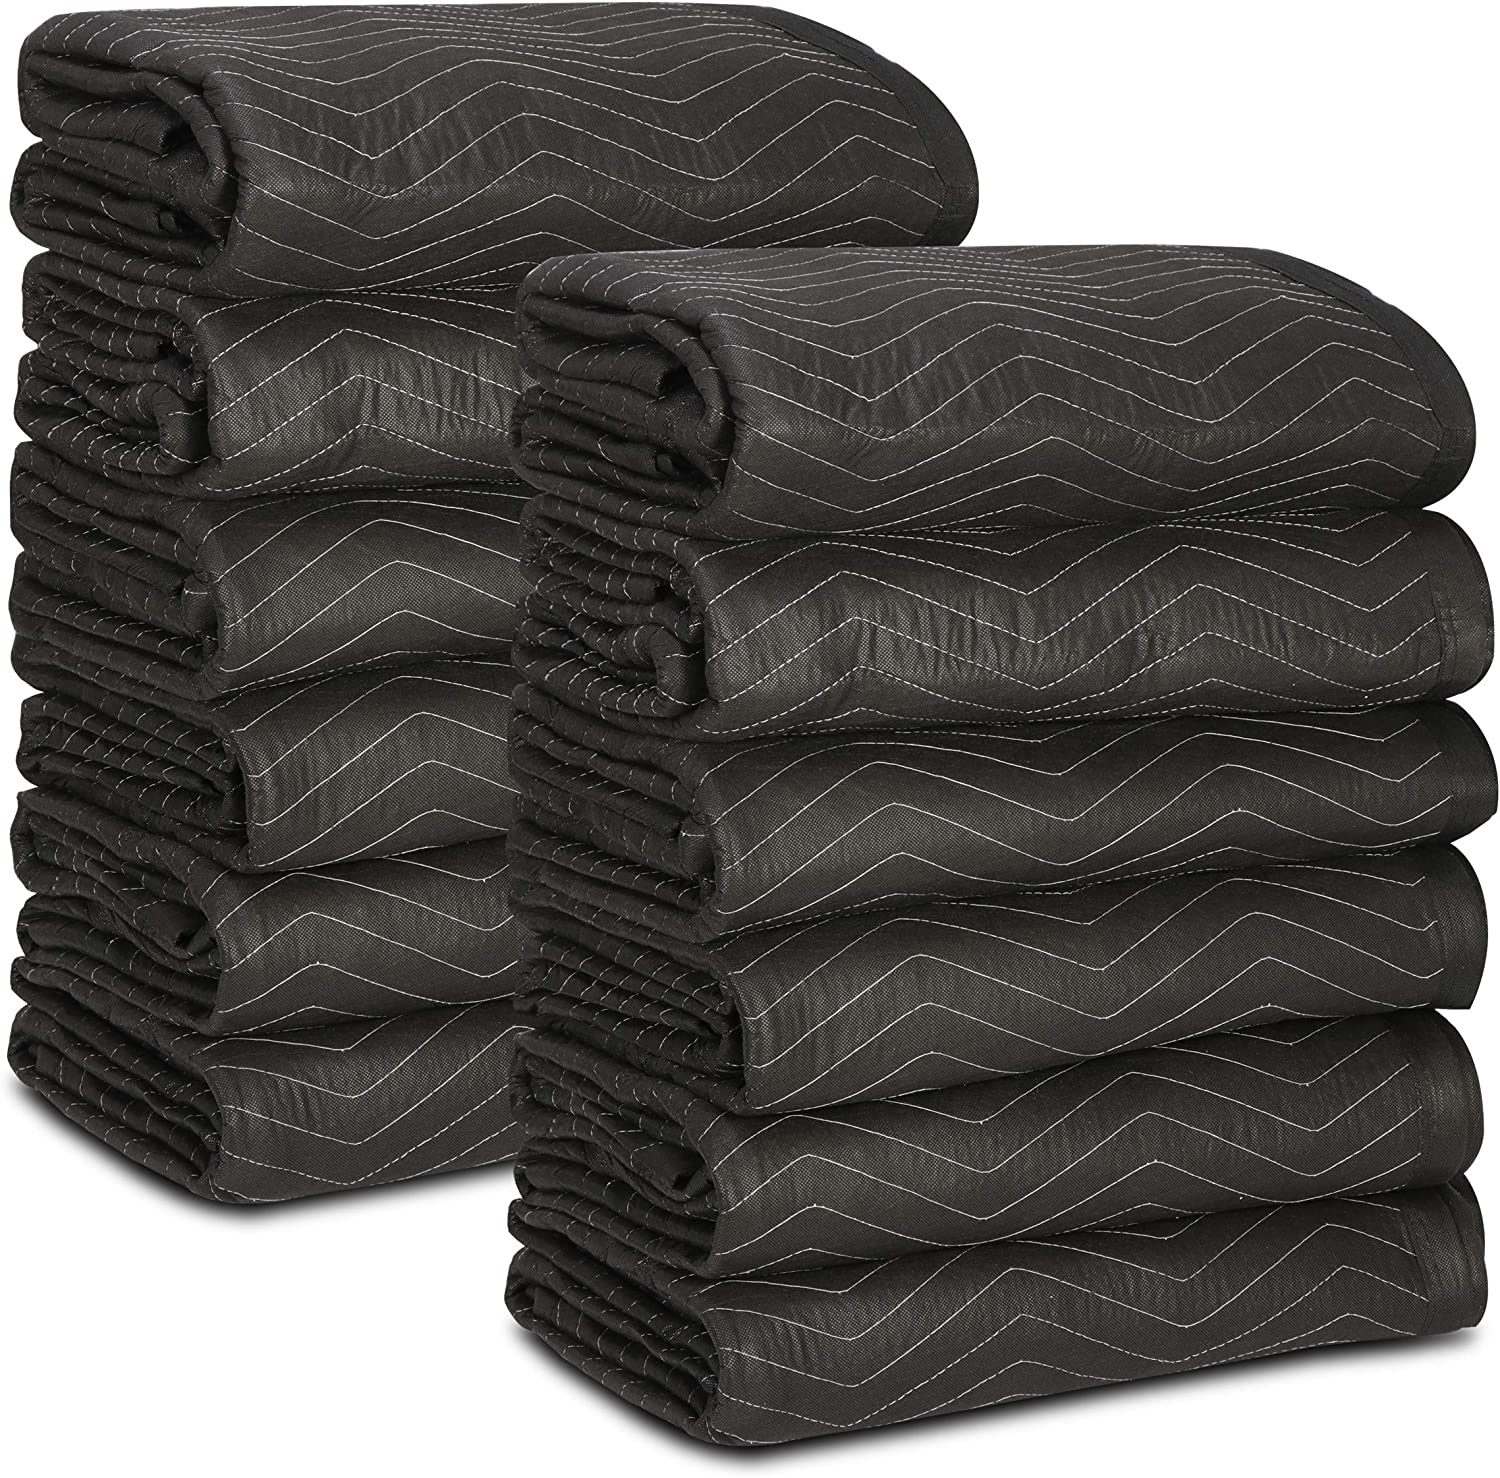 Max 50% Seasonal Wrap Introduction OFF ZENY 12 Heavy Duty Moving Blankets Movin Quilted Blanket Packing